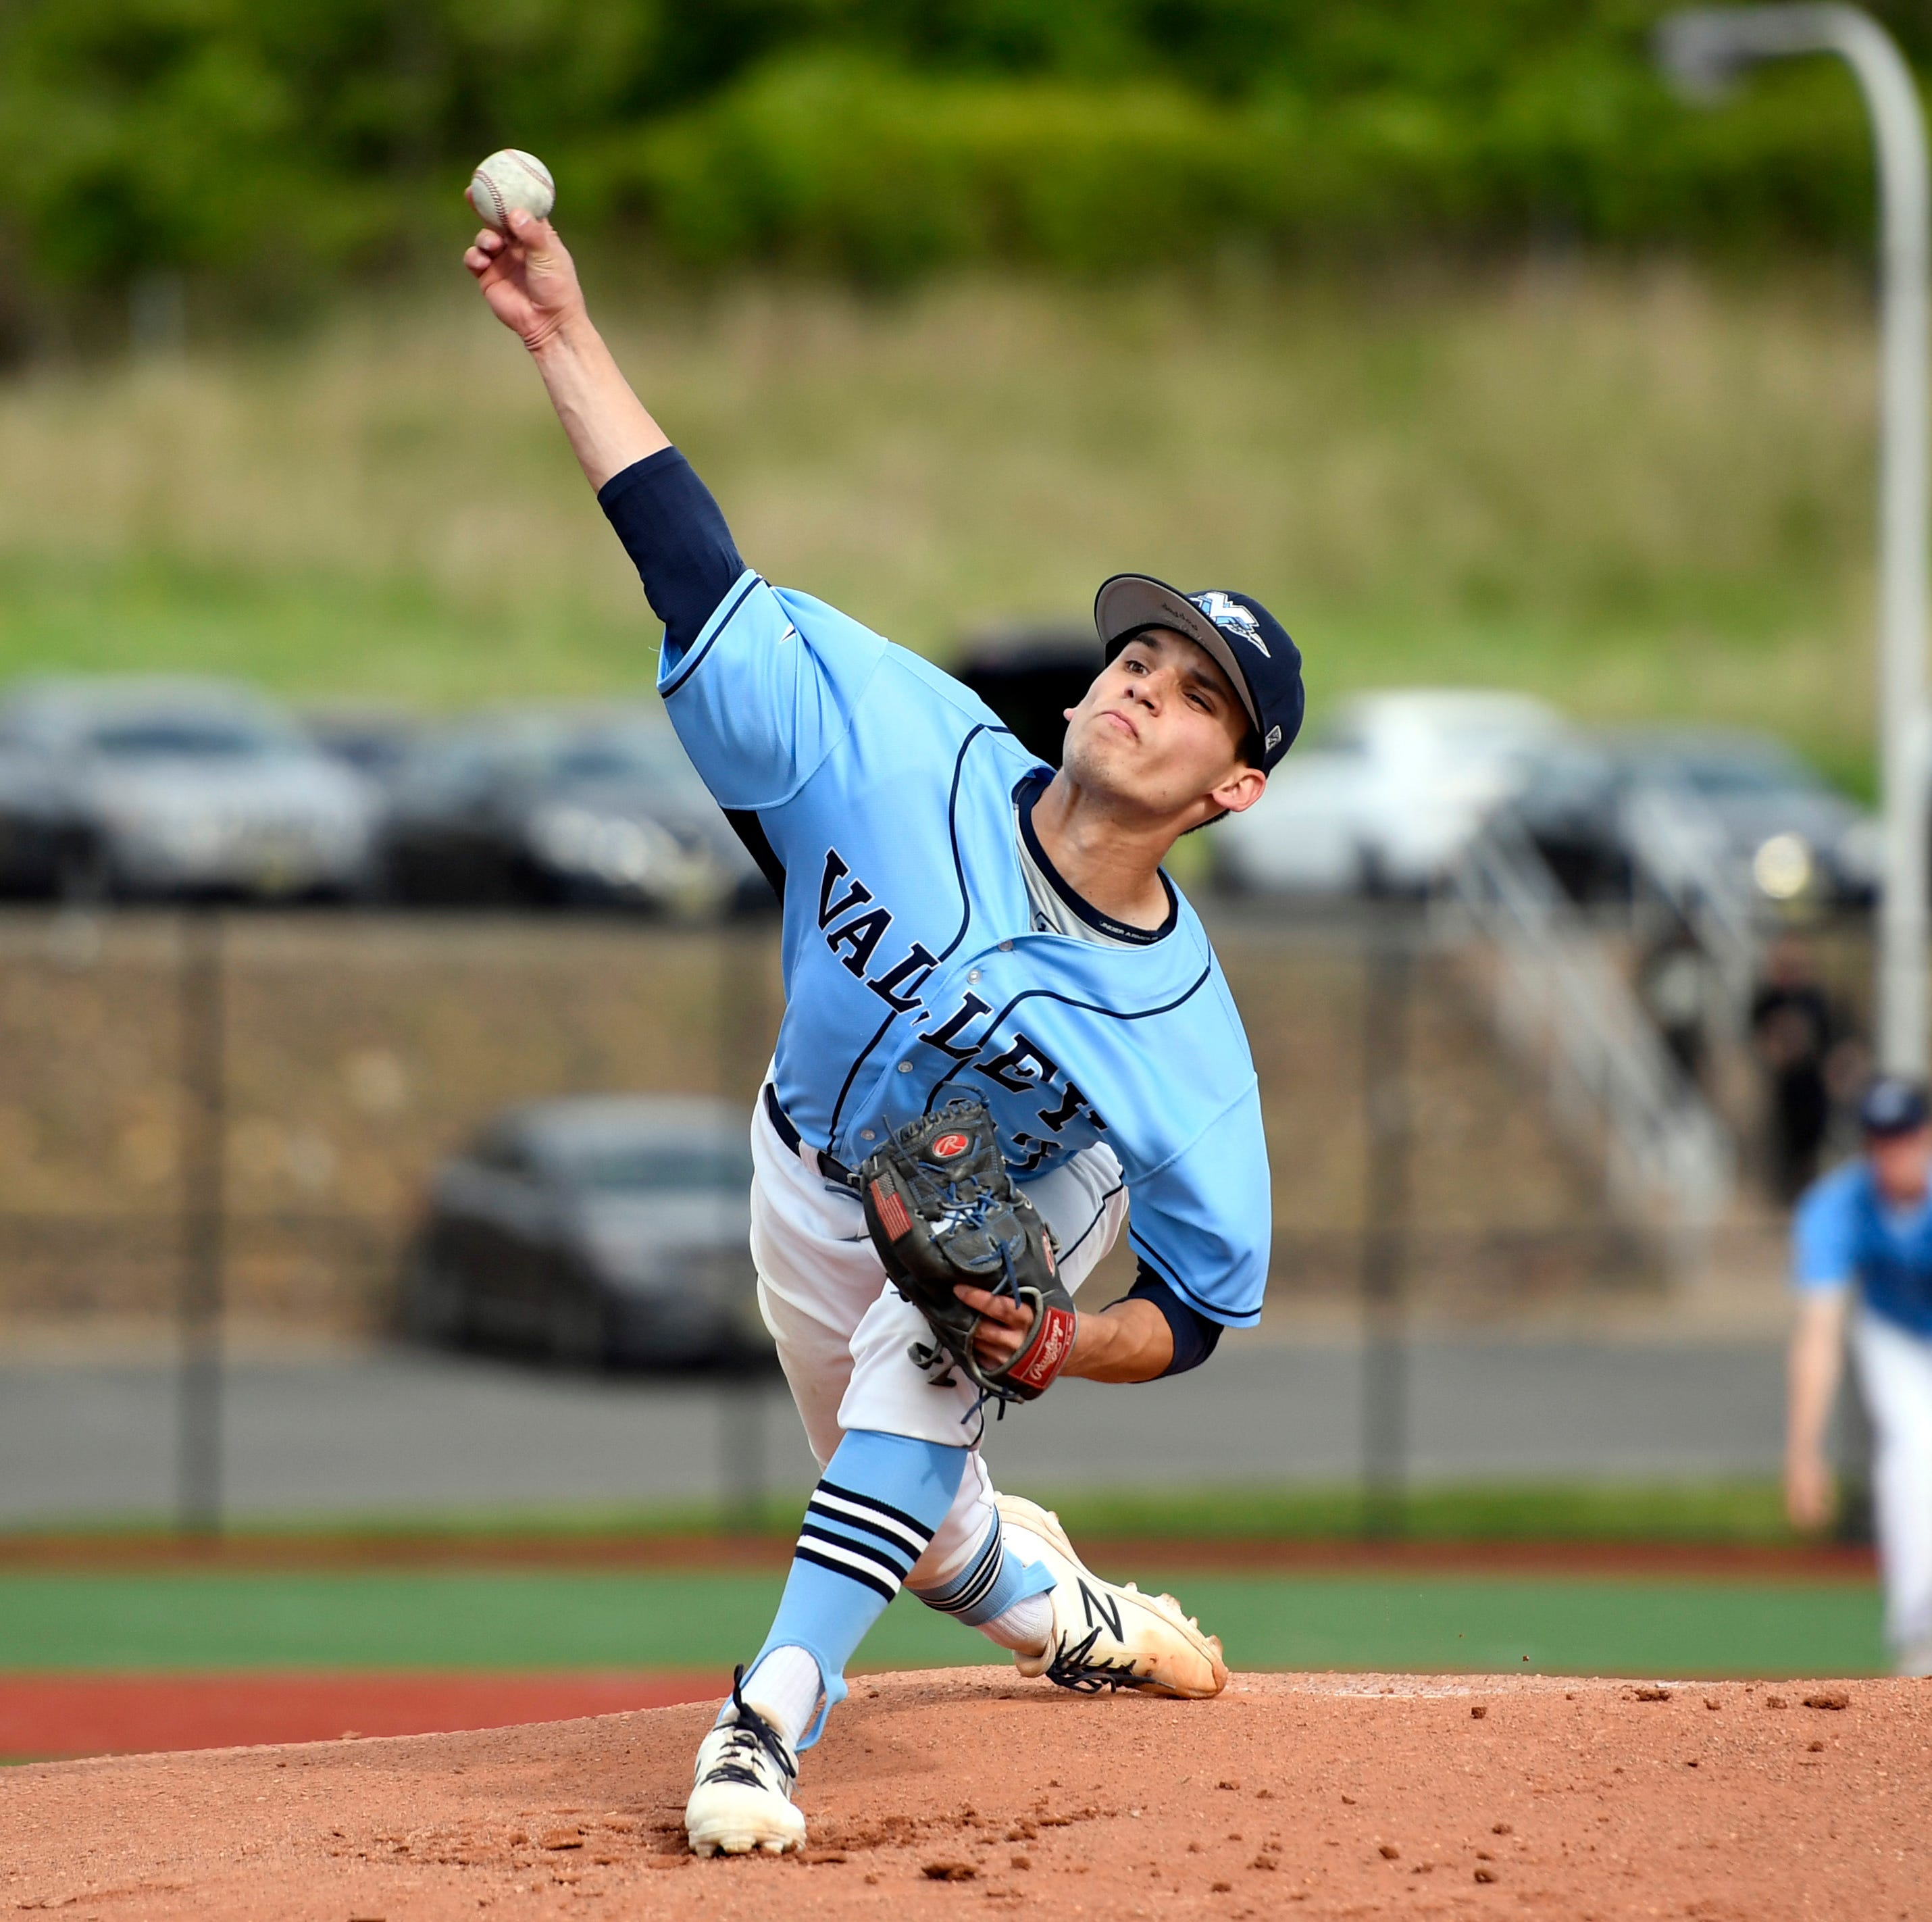 Wayne Valley pitcher Chris Coleman. Wayne Valley defeated Passaic Valley 2-1 in the Passaic County baseball championship on Thursday, May 16, 2019, in Wayne.